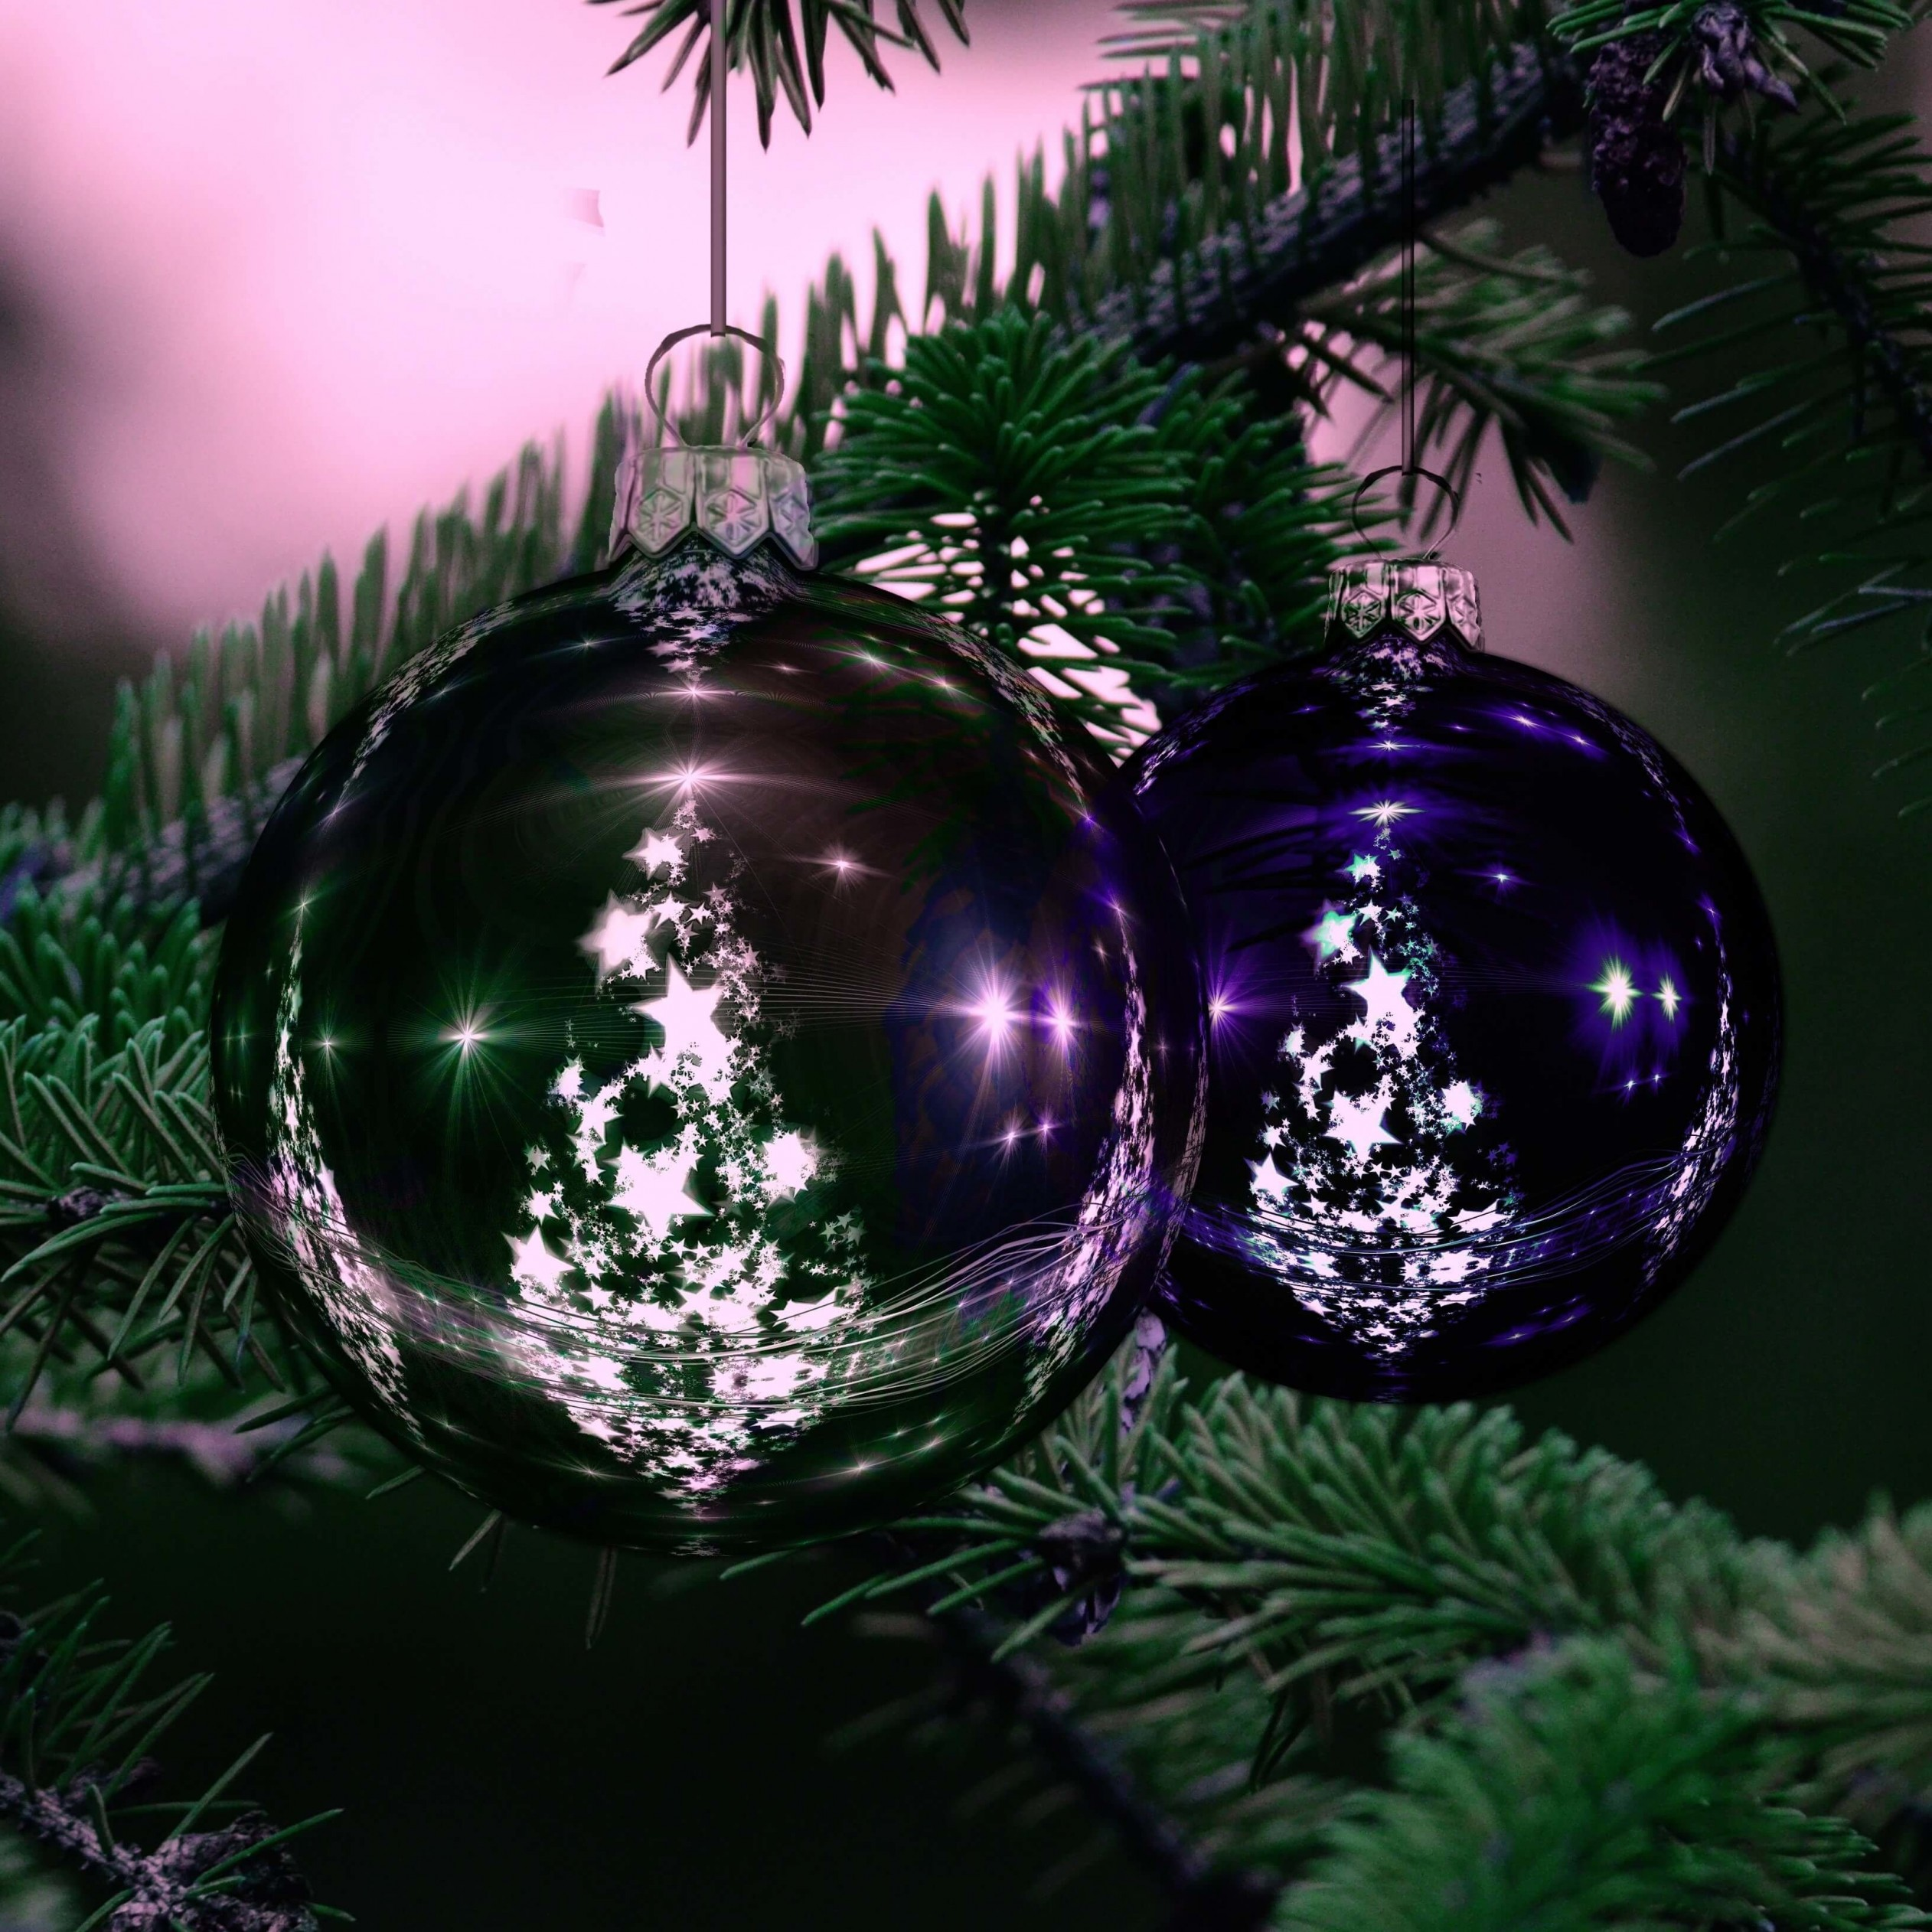 Download Beautiful Christmas Tree Ornaments Hd Wallpaper